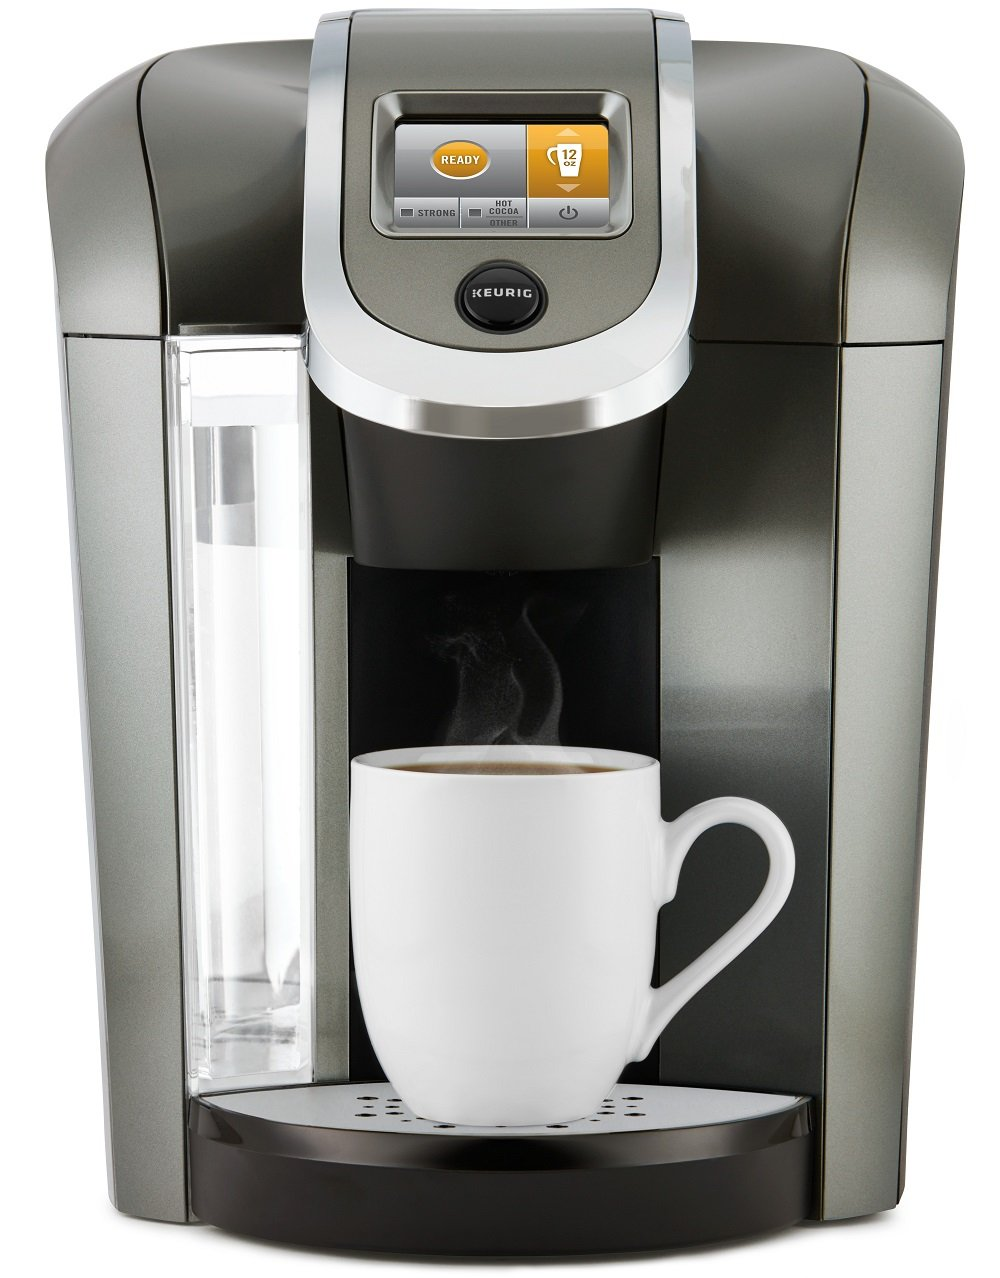 Keurig vs Ninja Coffee Bar - Which Coffee System Is Right For You